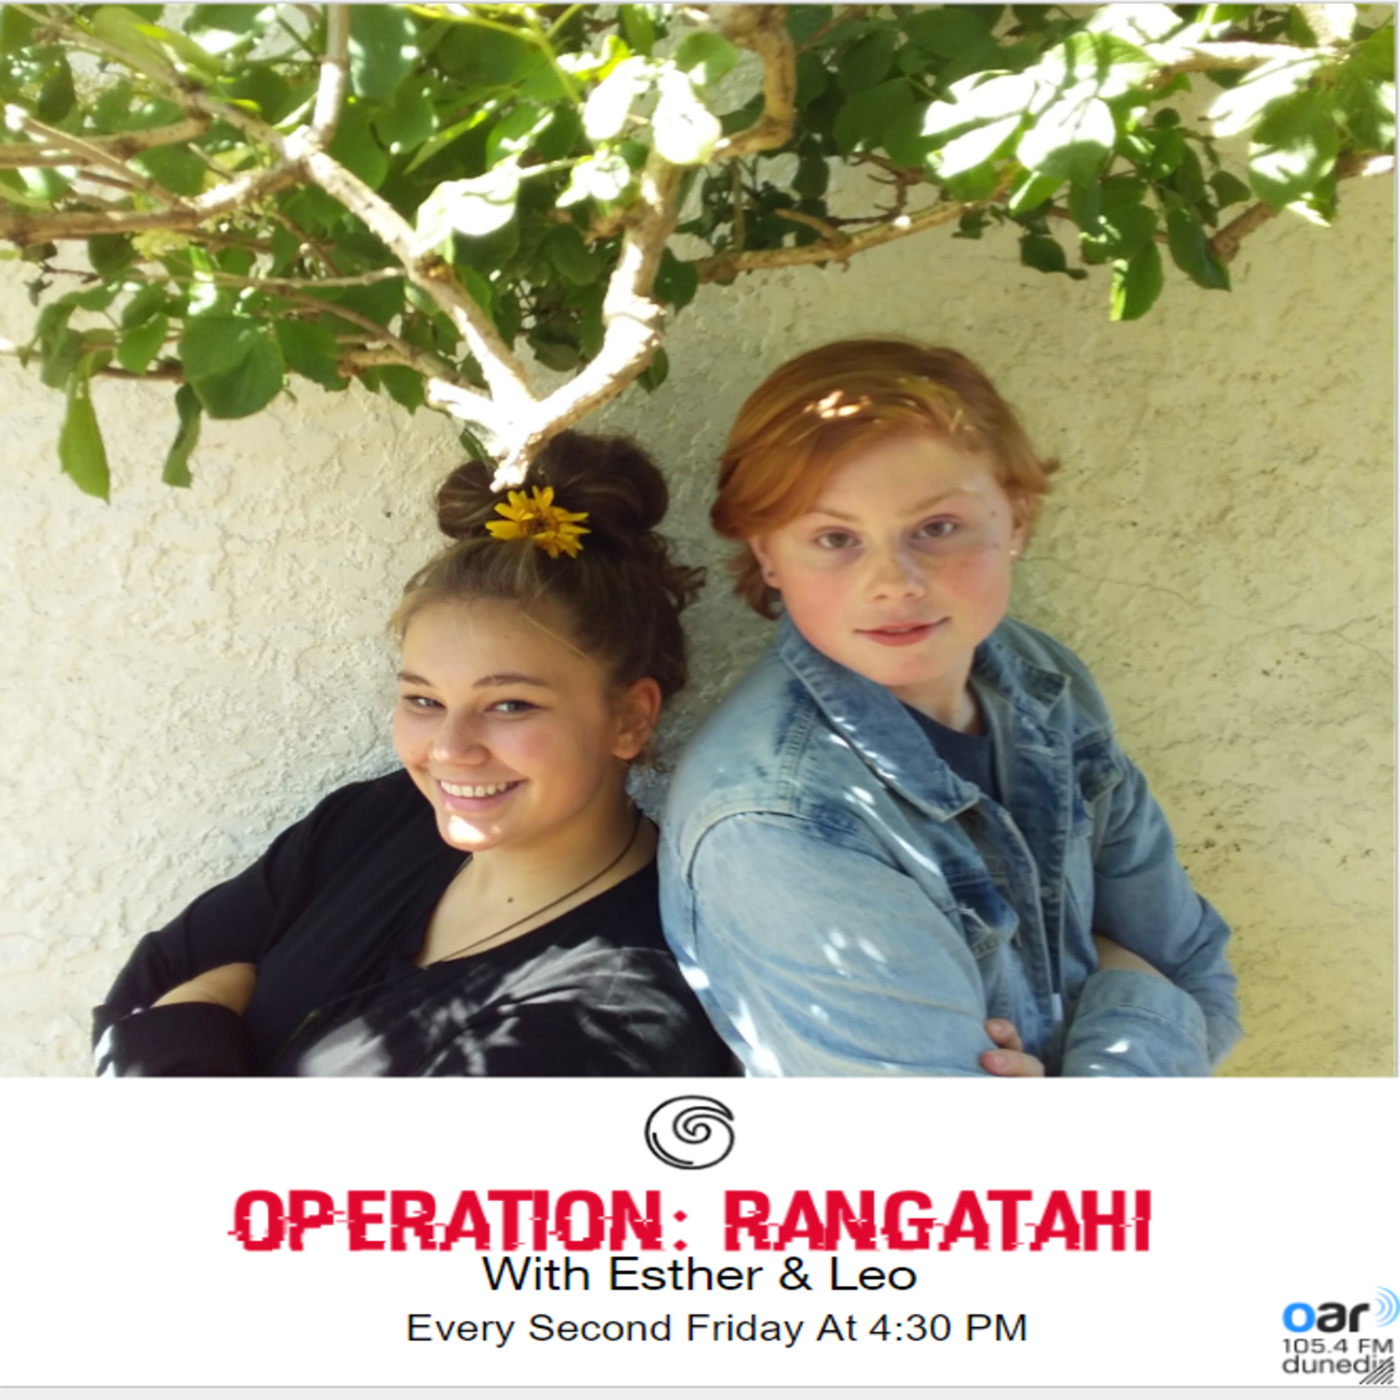 Operation: Rangatahi on Youth Zone